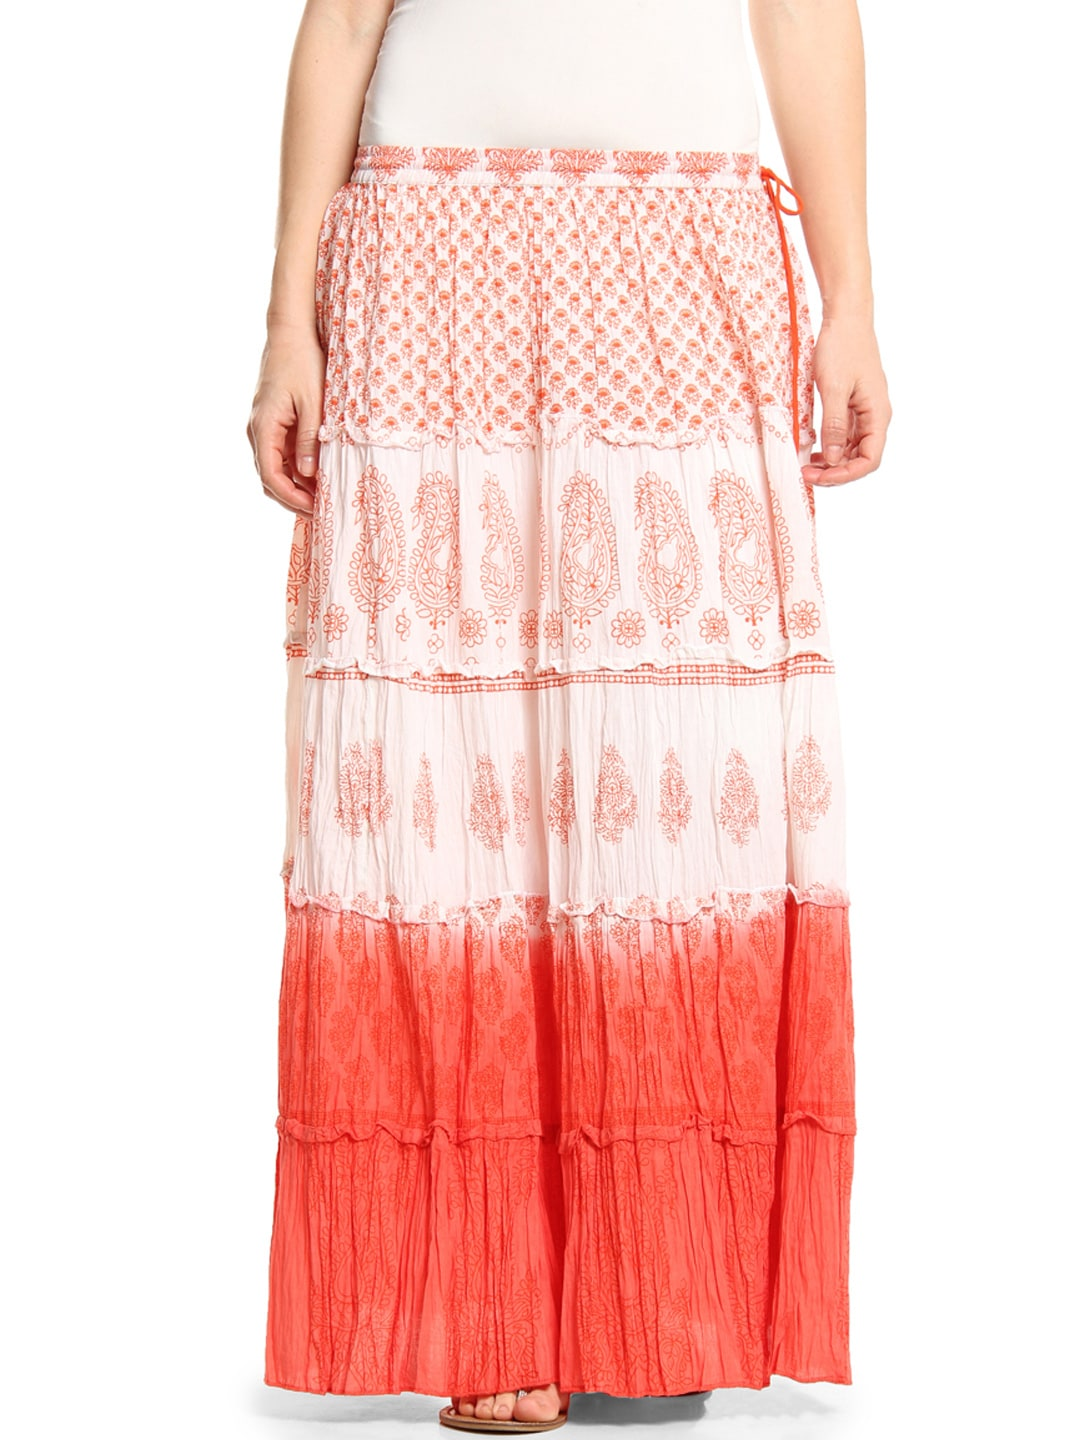 Shraddha Kapoor for IMARA White & Orange Printed Maxi Skirt